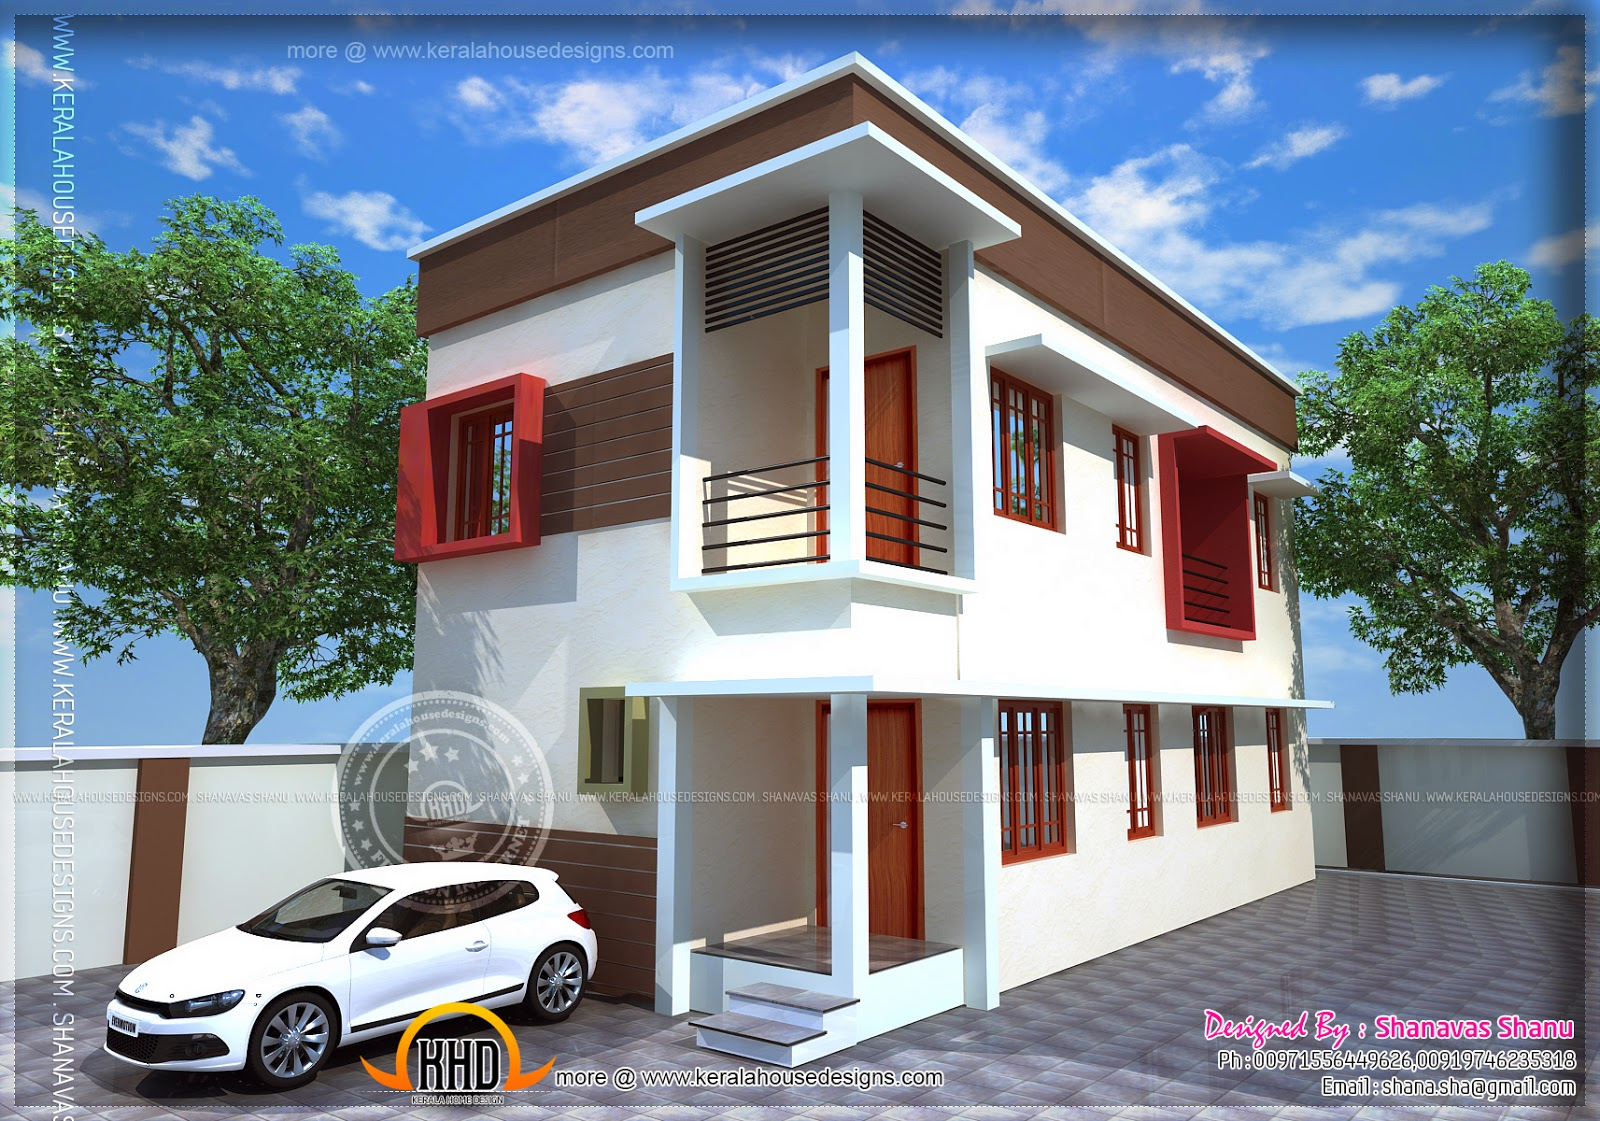 Small plot villa in cents of land kerala home for Small house design in kerala